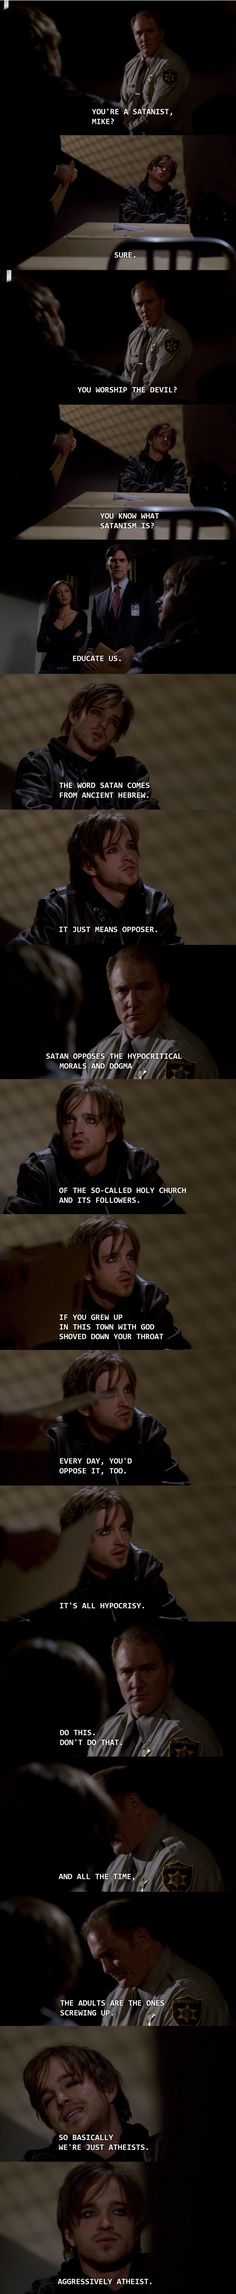 Aaron Paul is an eyeliner-wearing Satanist on an episode of Criminal Minds. He explains what Satanism really is.